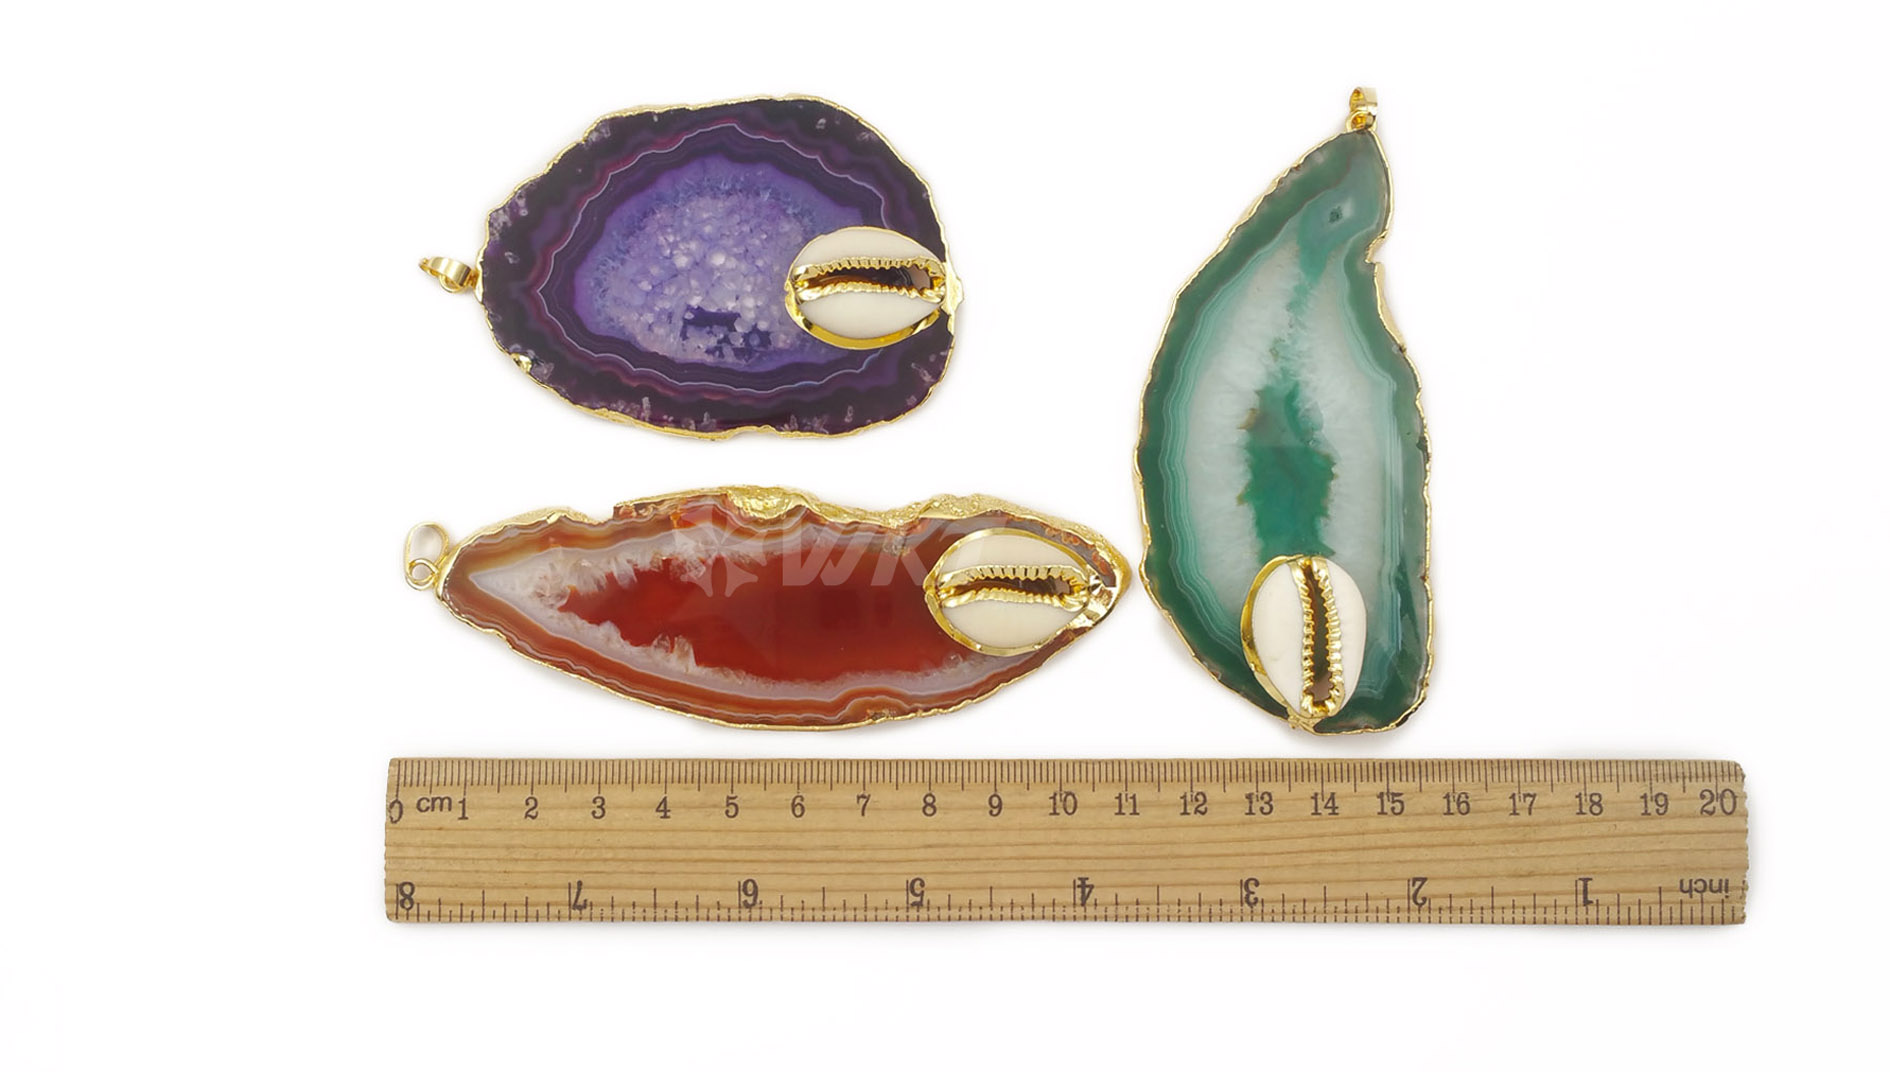 WT-P1452 Women gold plated slice agate with cowrie charm stone pendant natural big stone agate pendant